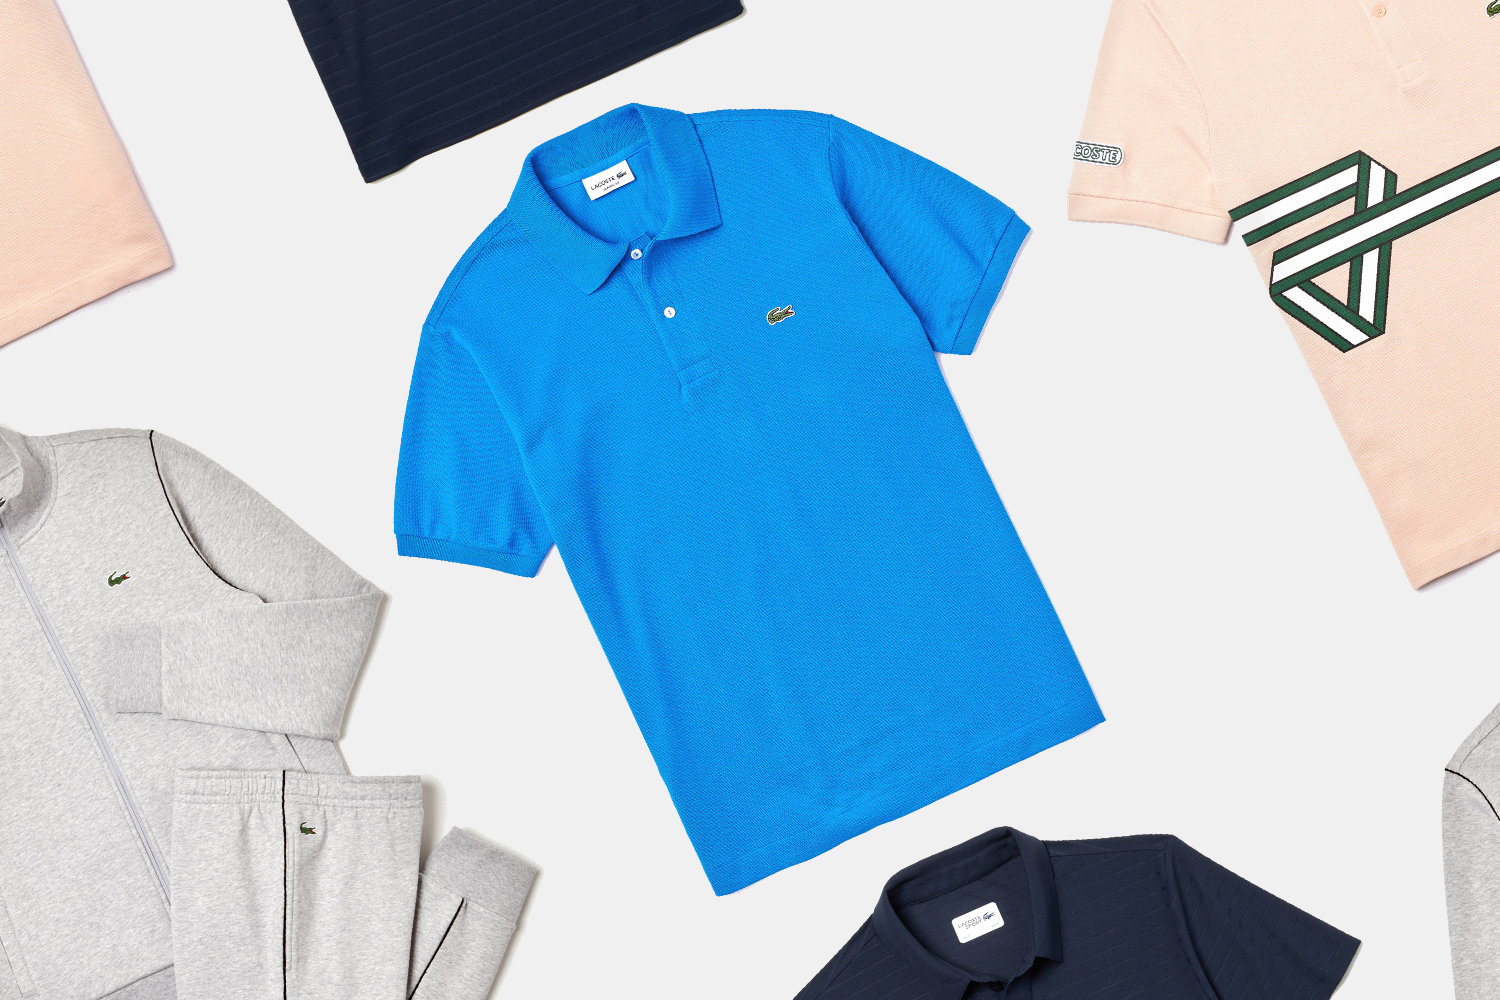 Lacoste polos, tracksuits and shirts